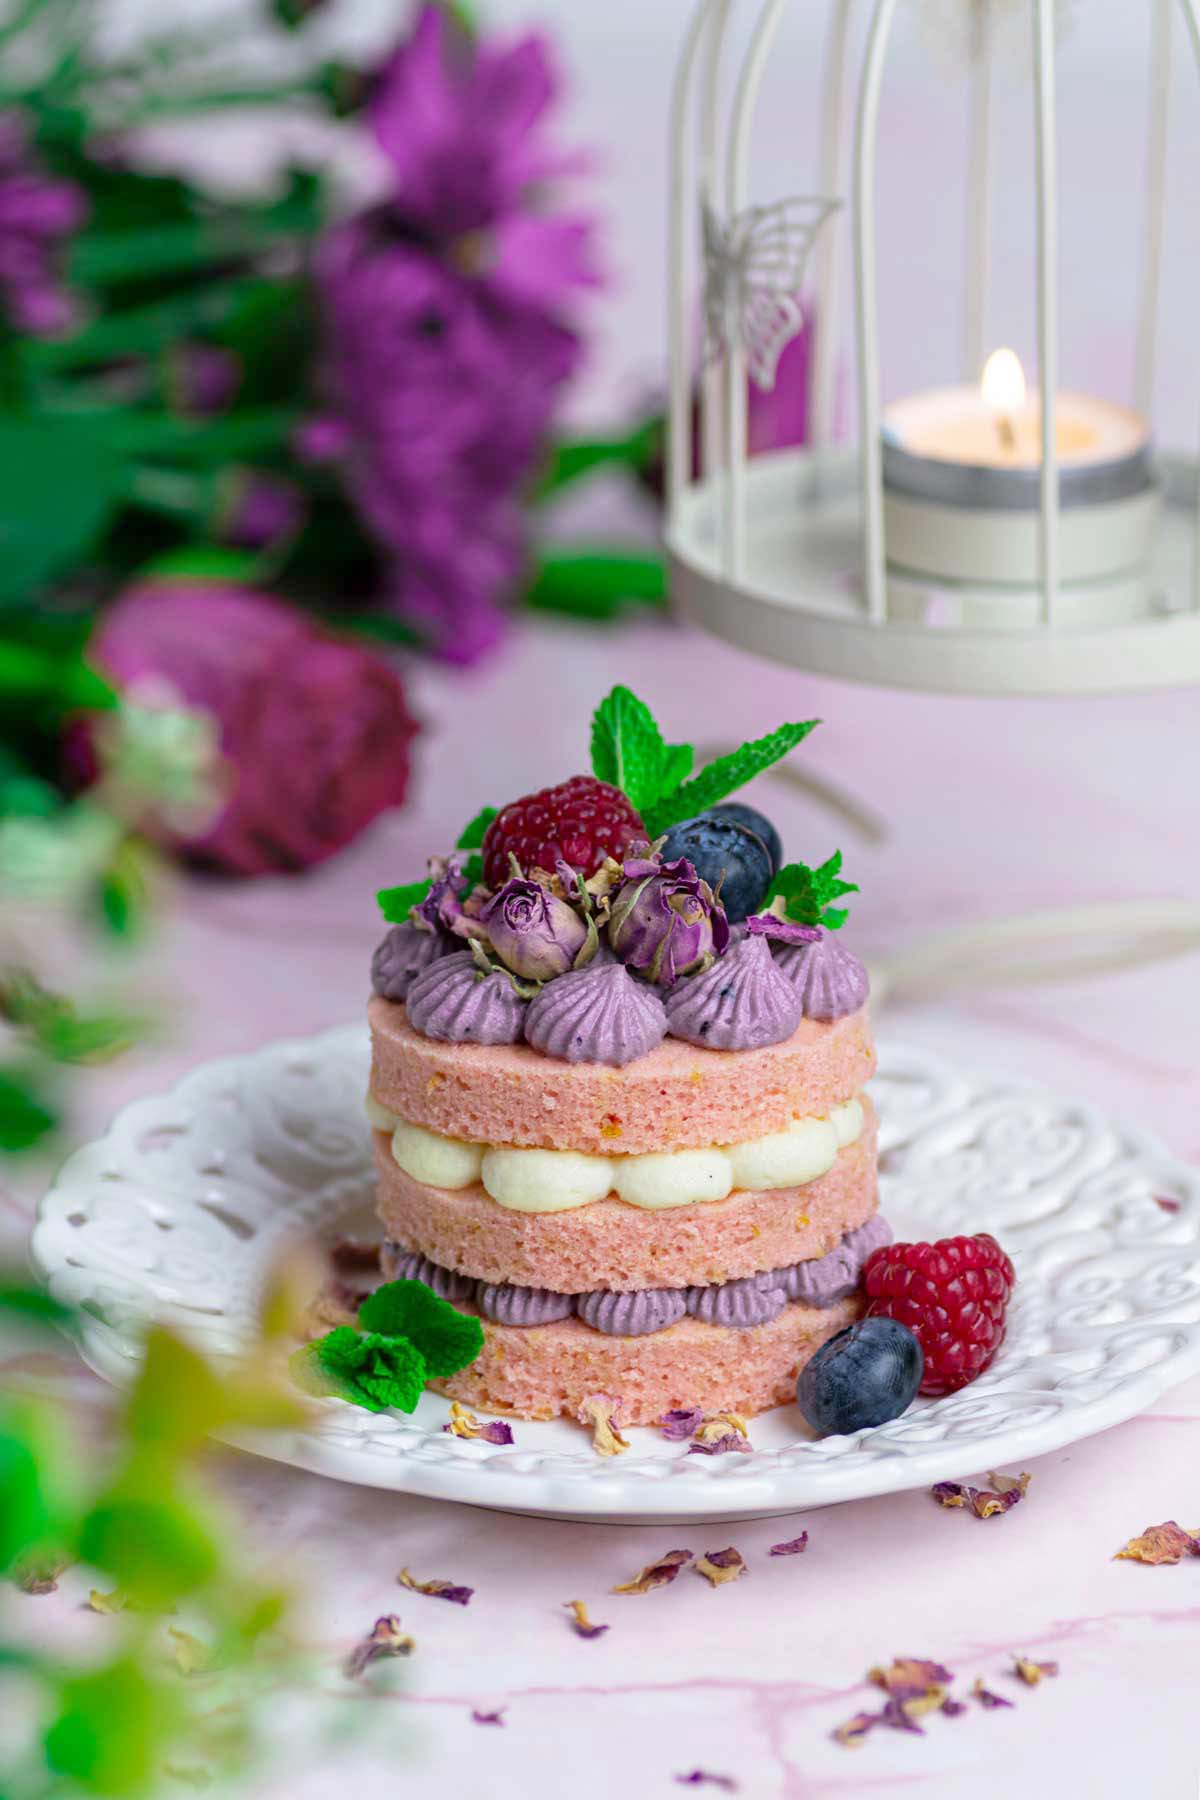 Mini cake with blueberries decorated with fresh fruit